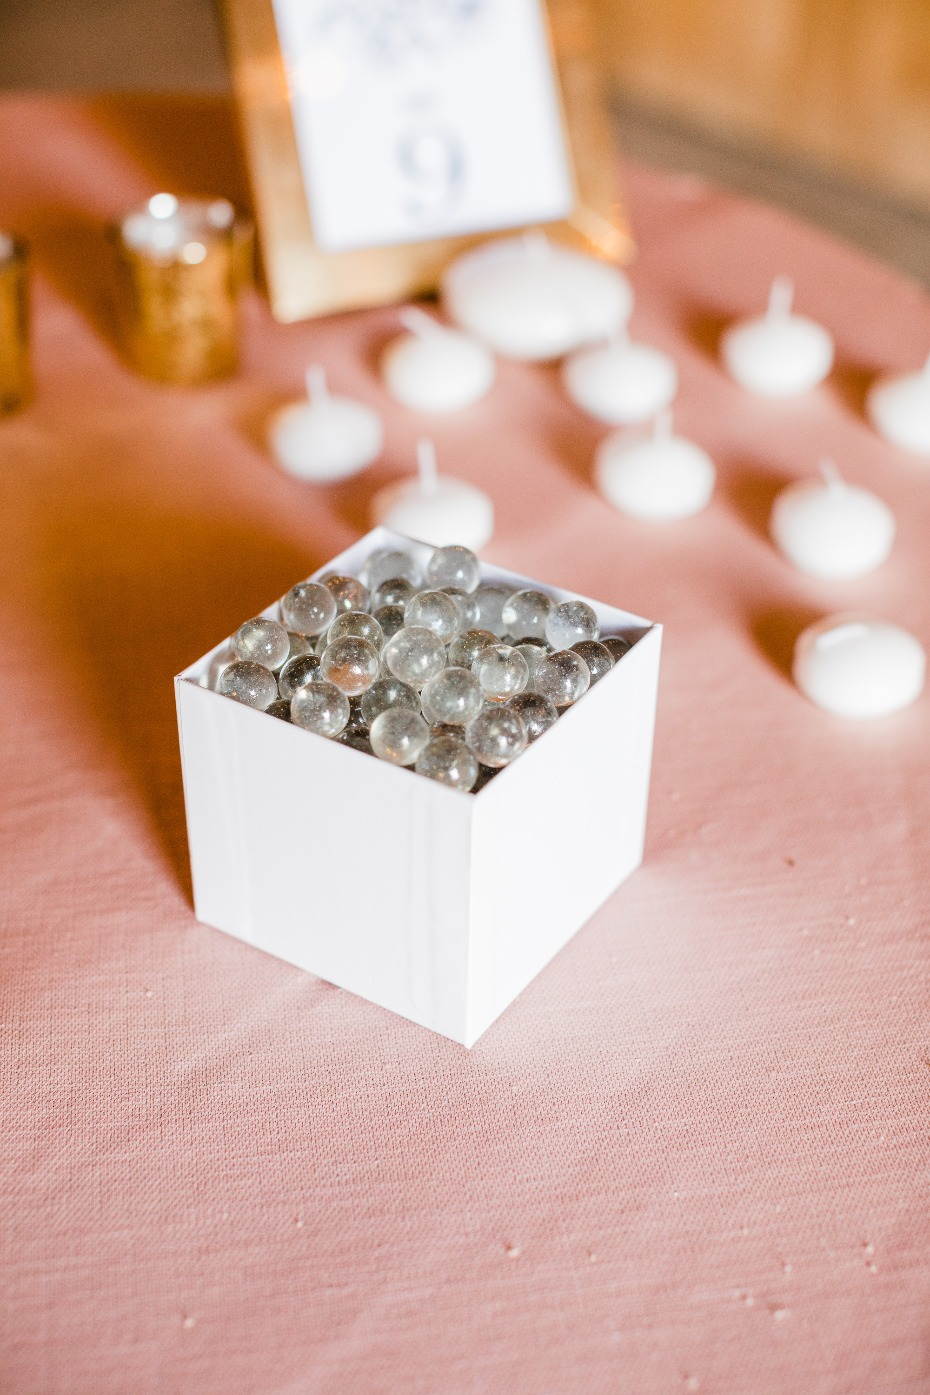 DIY Wedding Reception Centerpiece Clear Pebbles for Weight